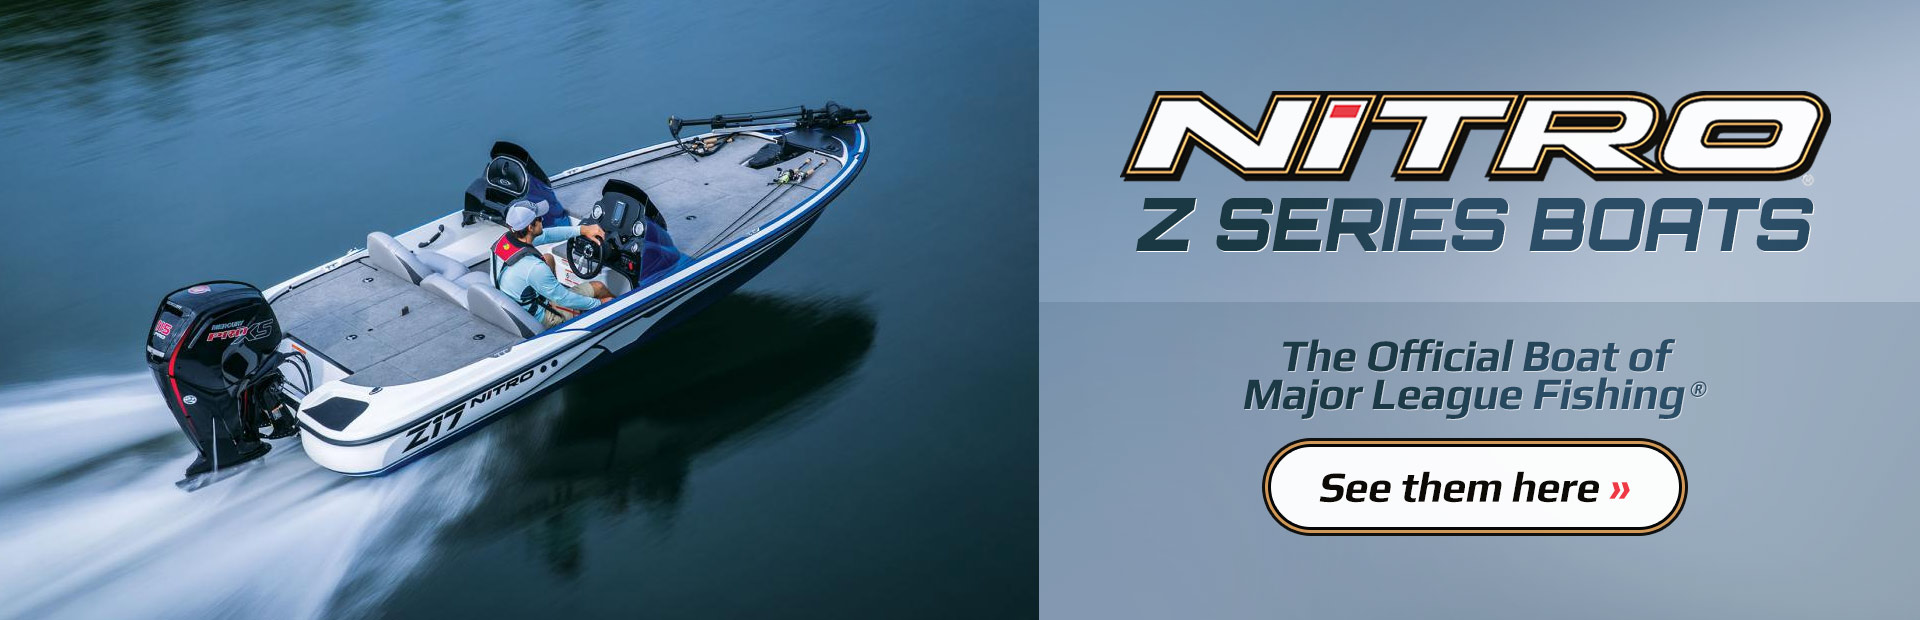 Home Alliance Marine & Sport East Braintree, MB (800) 230-5431